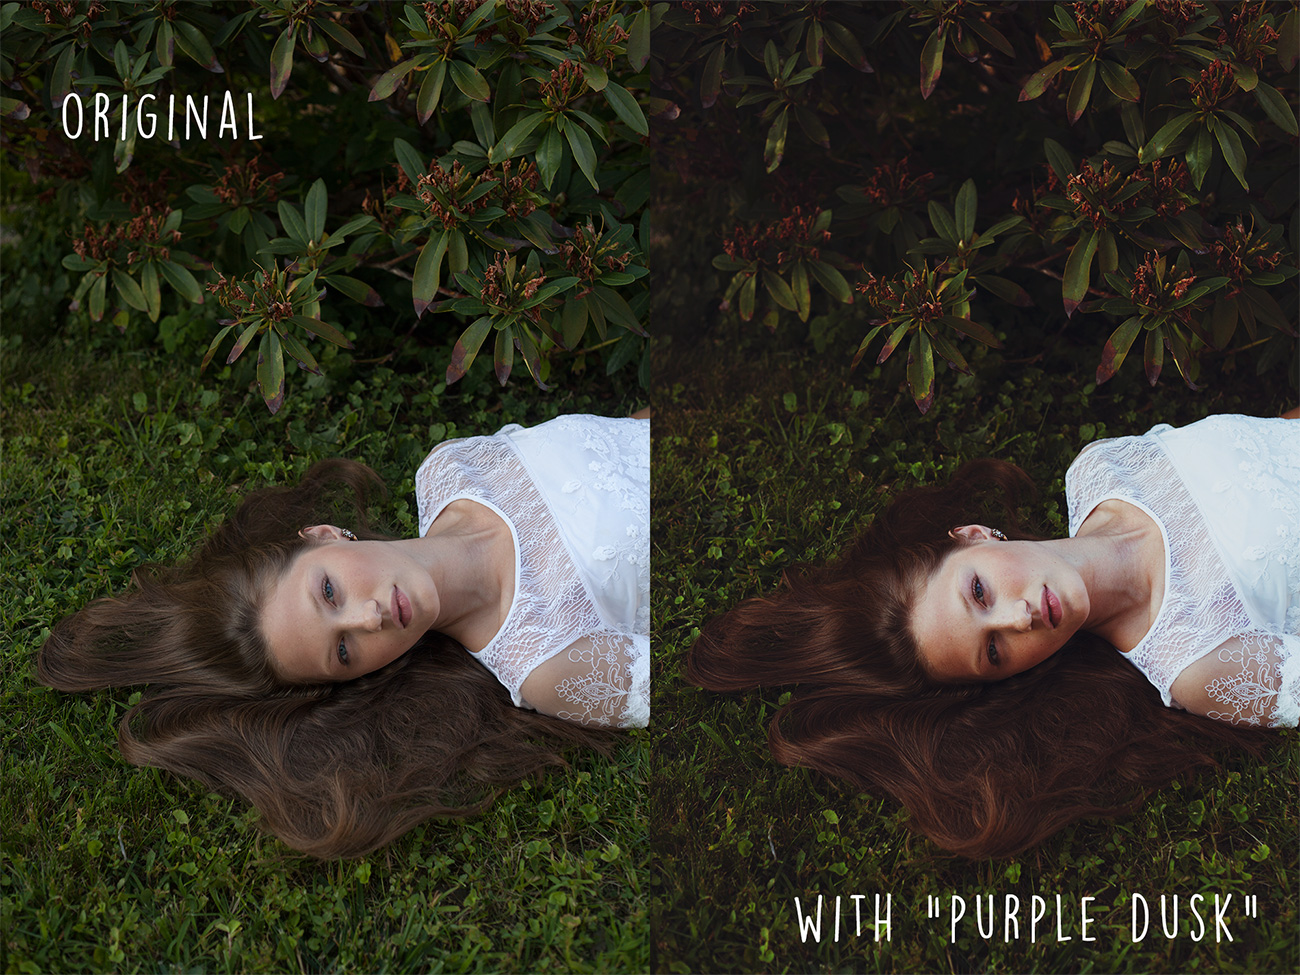 Before and after photo sample using Photoshop curve